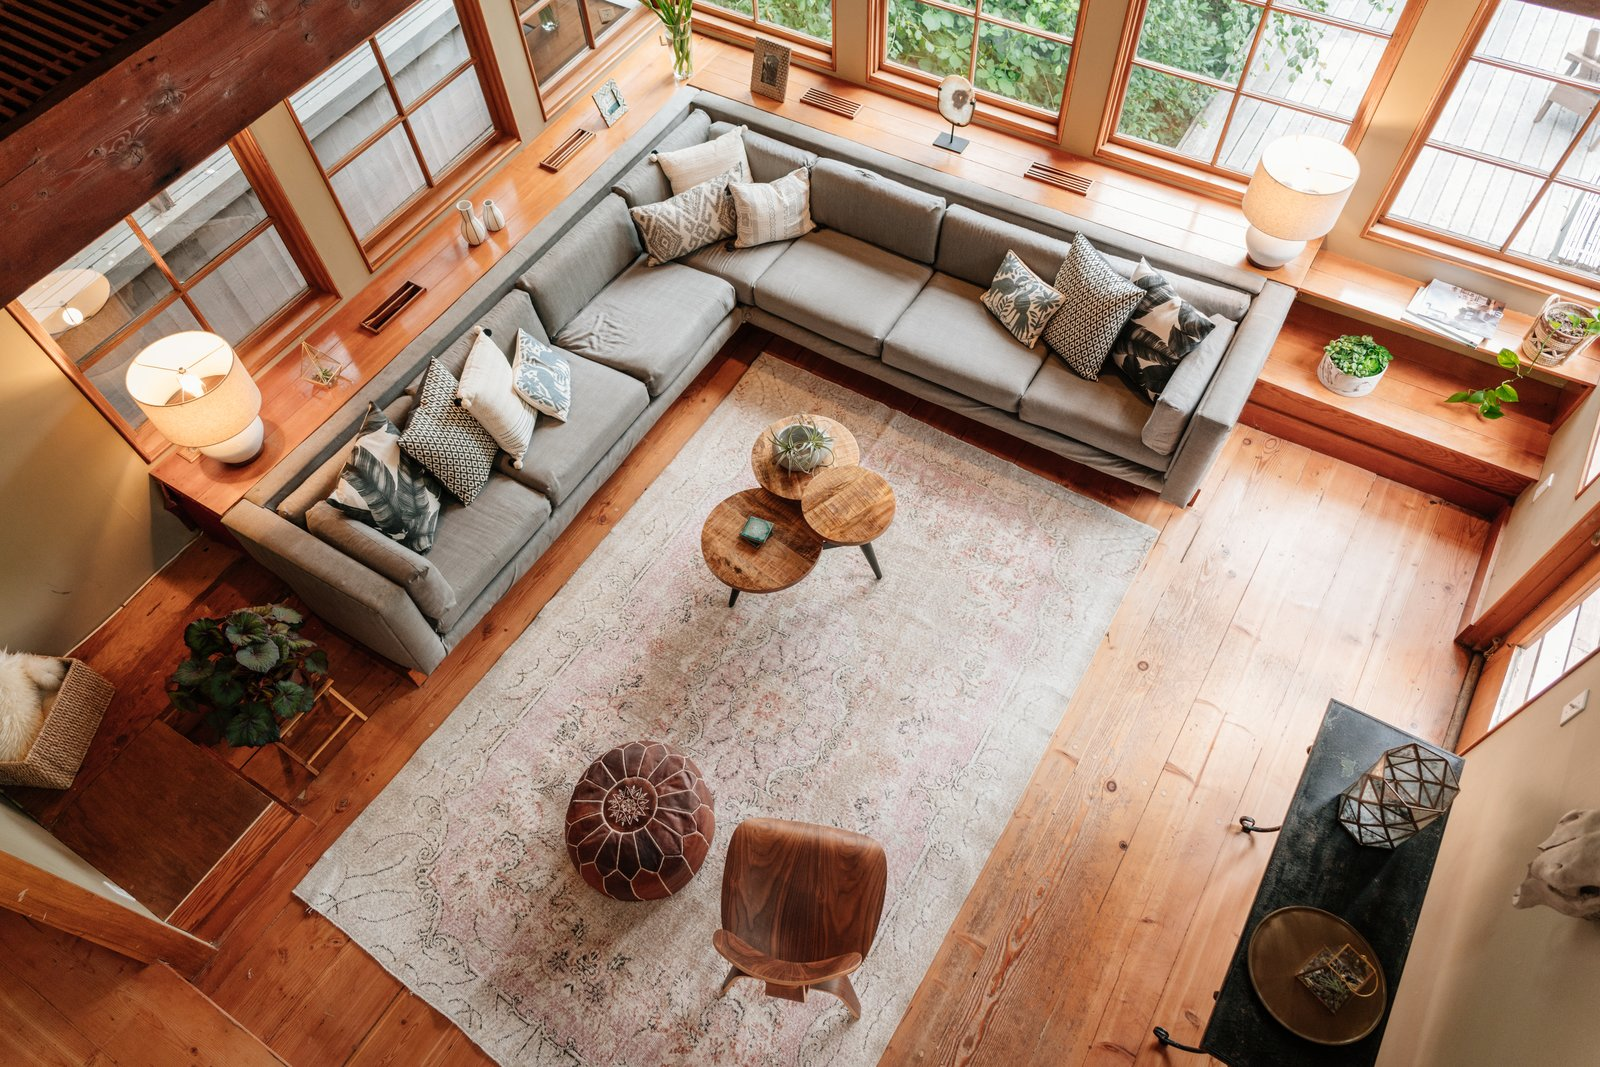 Living Room, Coffee Tables, End Tables, Console Tables, Lamps, Table Lighting, and Medium Hardwood Floor  Photo 4 of 19 in Repurposed Ship Materials and 100-Year-Old Beams Make Up This Tree House-Like Home